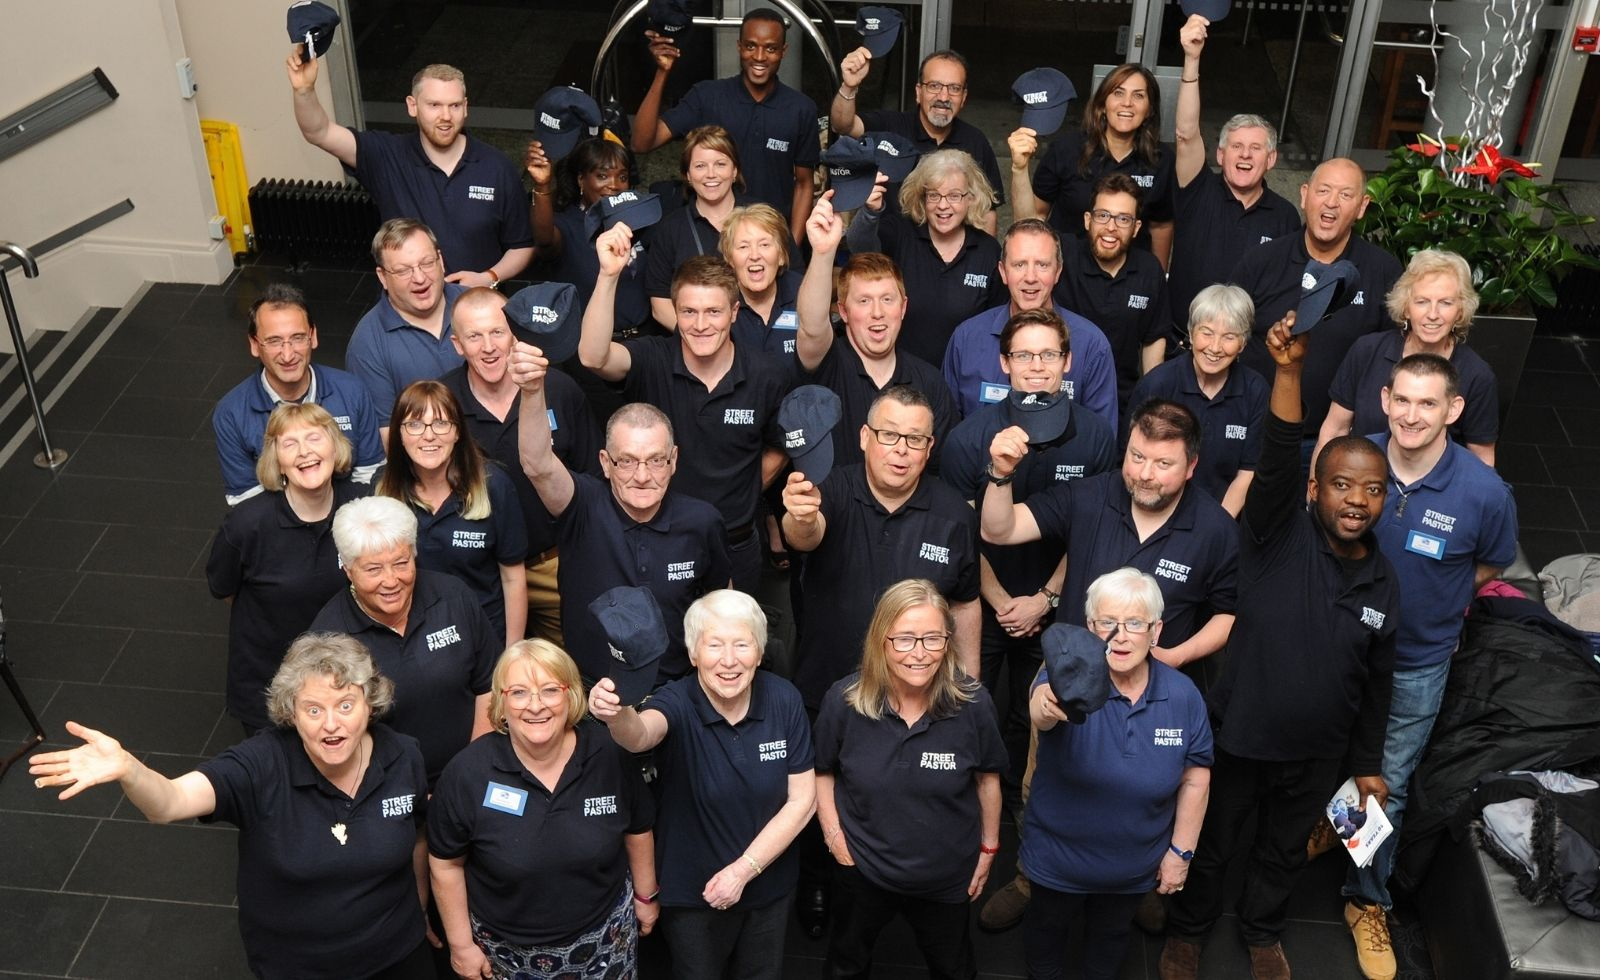 A large group of street pastors all posing for the camera. Some are holding dark blue caps in the air.